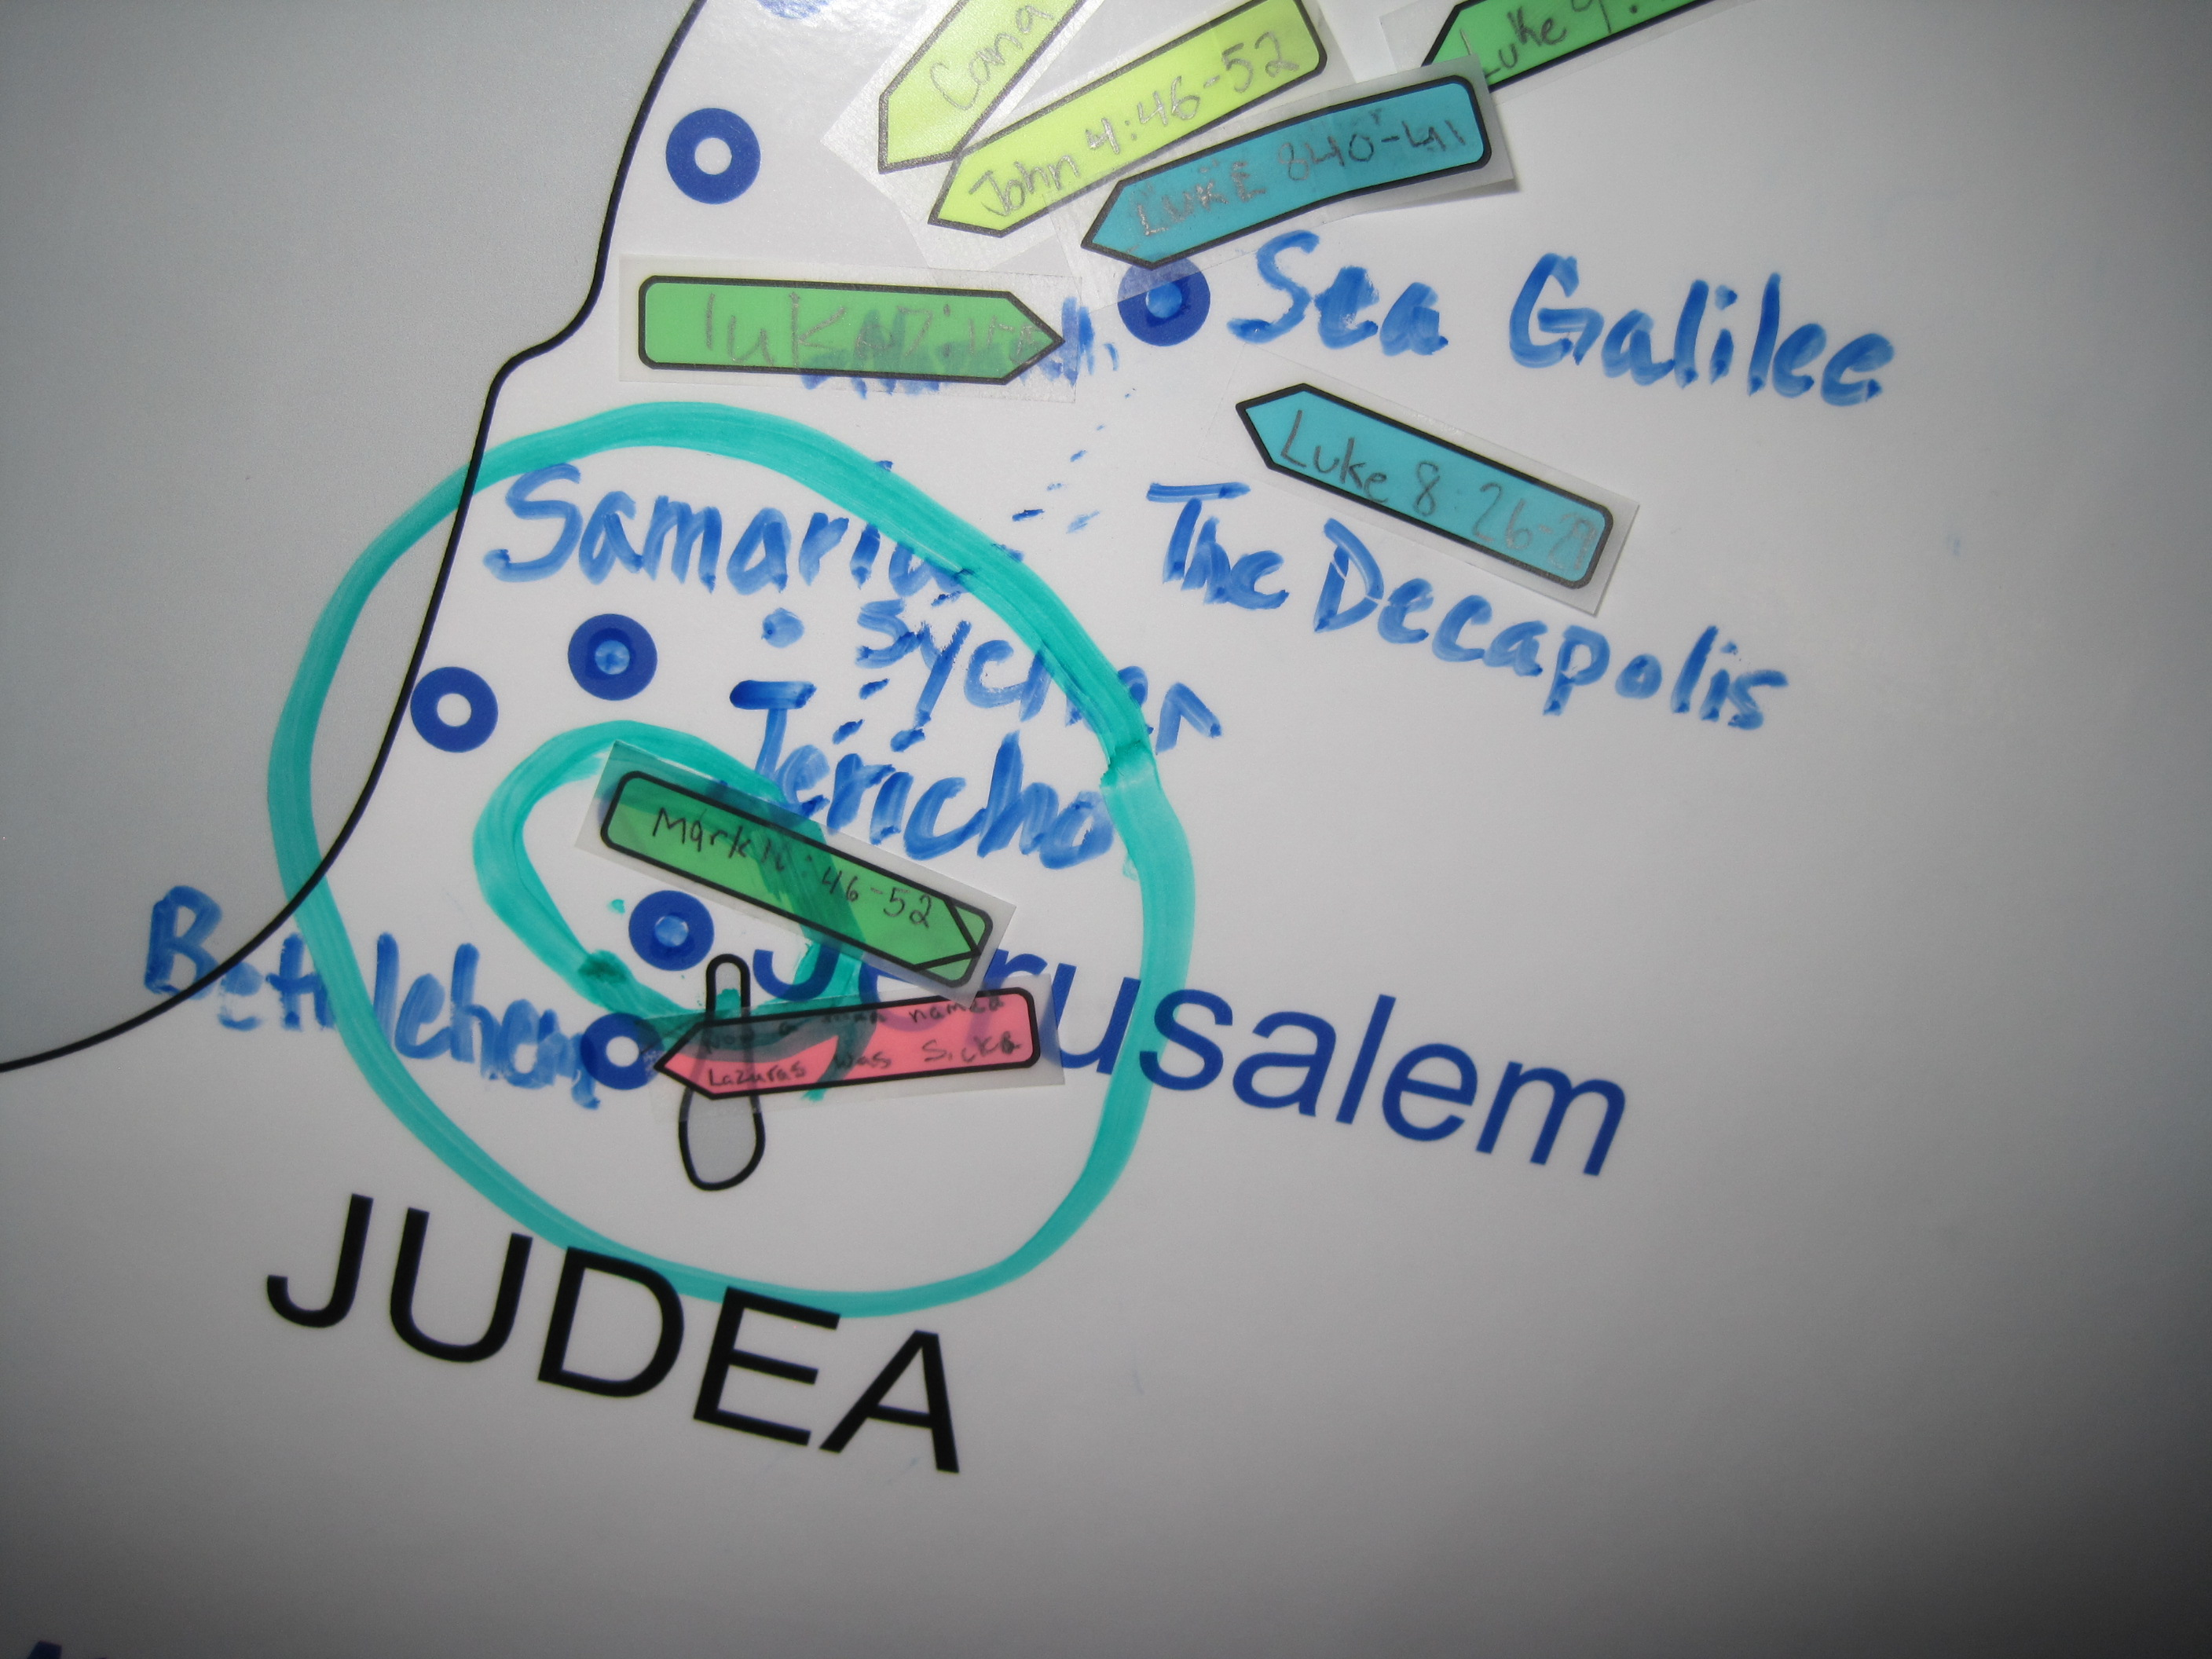 Jerusalem Judea Samaria And The Ends Of The Earth Map.Thirty Years That Changed The World God S Great Plan